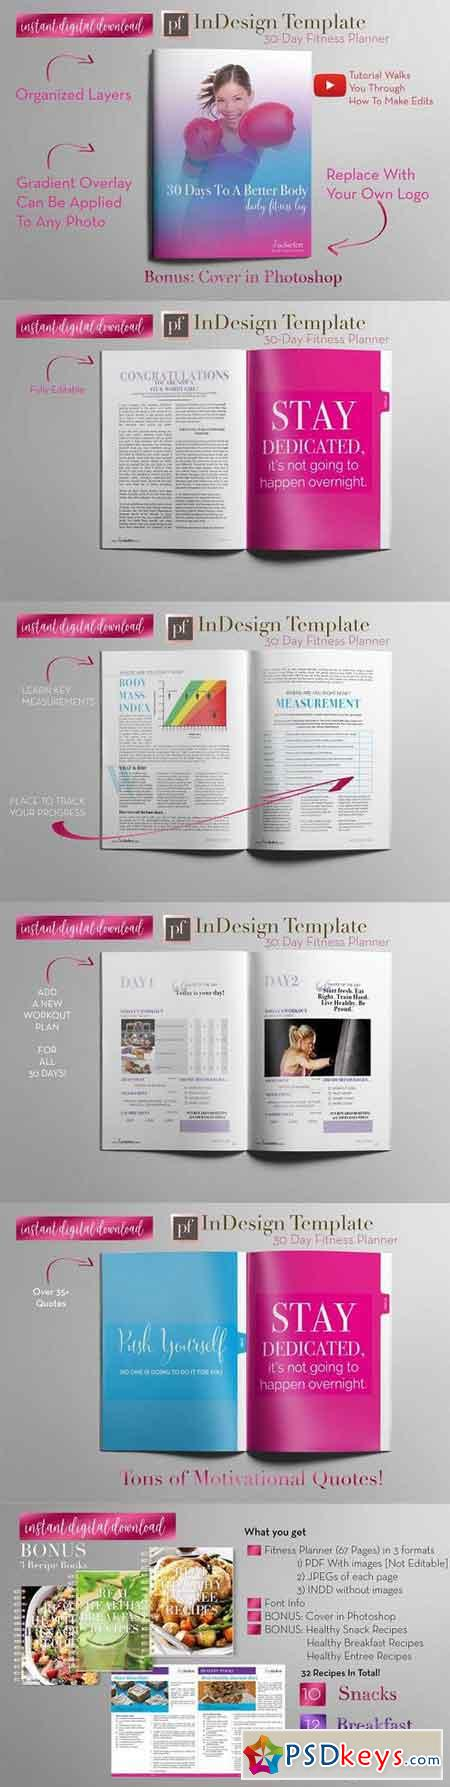 Fitness Planner InDesign Template 1205805